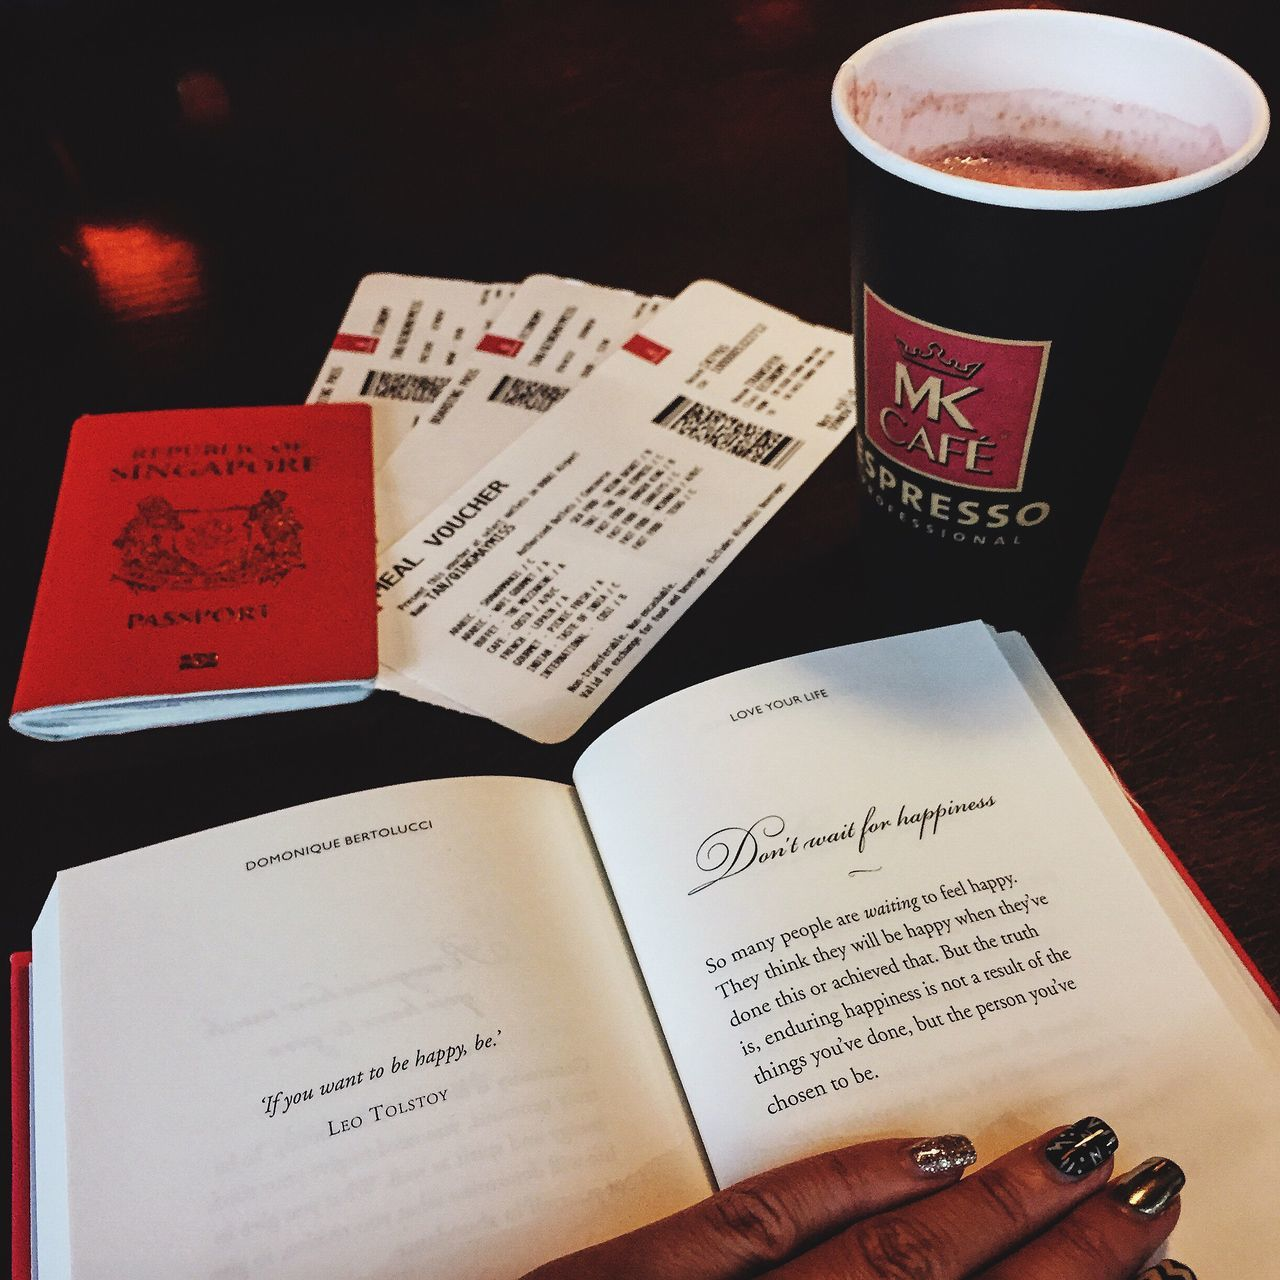 Traveling. Text Communication Indoors  Real People Table Paper Close-up One Person Human Hand Day Airport Airport Waiting Tickets Plane Ticket Passport Coffee Coffee Time Book Flatlay Travel Traveling At The Airport Waiting Breakfast